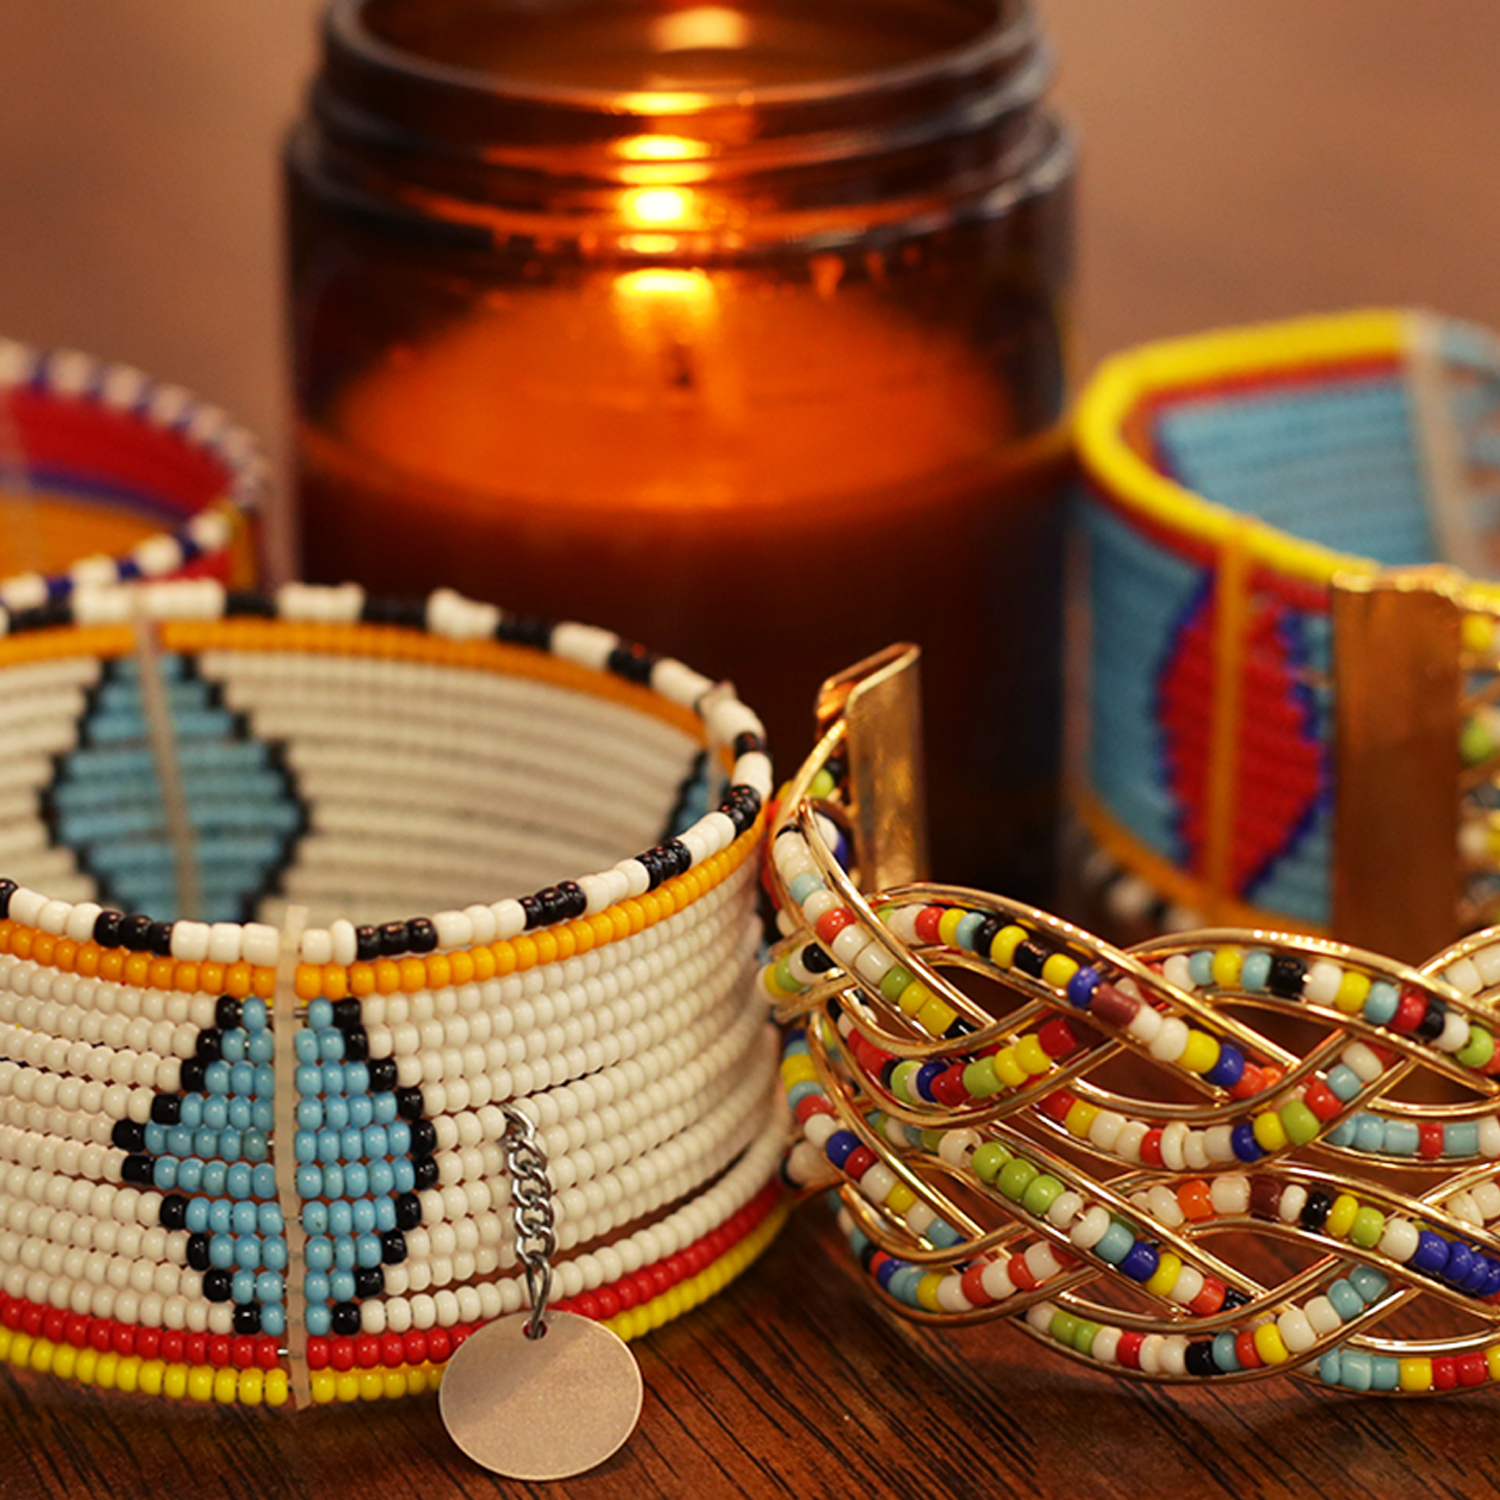 Buy Jewelry for Clean Water! - Buy beaded jewelry made in Tanzania and support a clean water project that will impact thousands! (Made in Tanzania at a fair wage!)